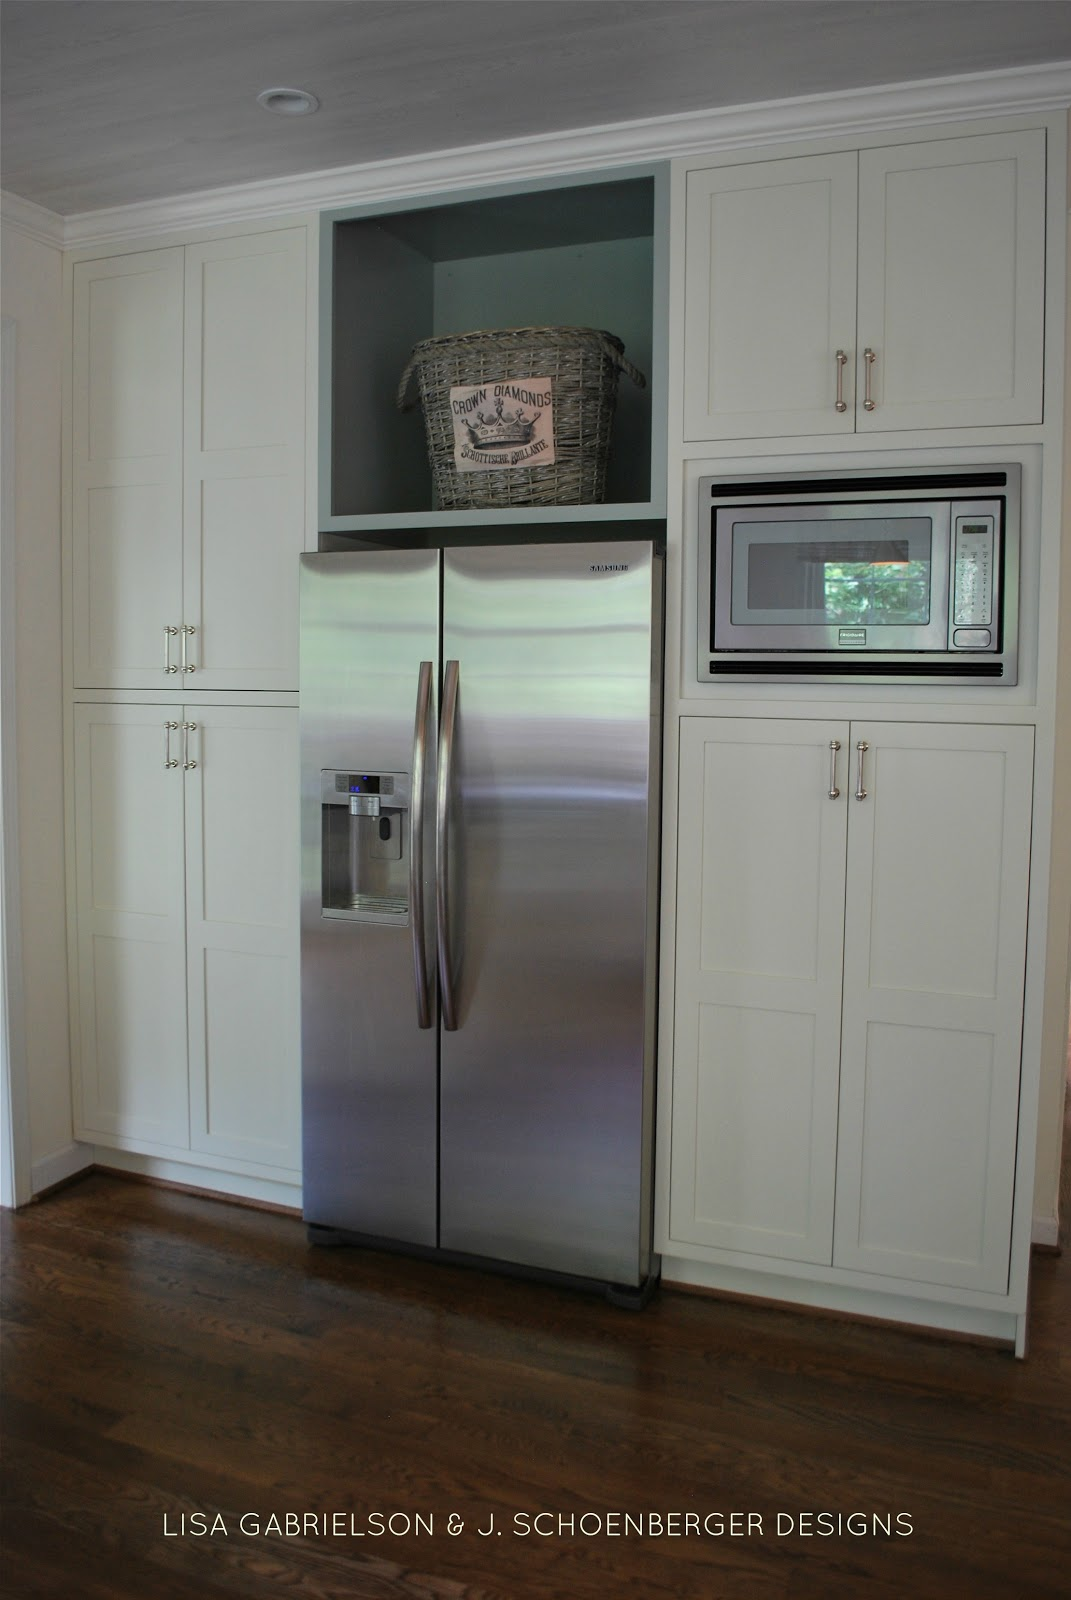 Marvelous Afteru2026all Cabinets And Walls Painted Mascarpone By Benjamin Moore With  Touches Of Tranquility By Sherwin Williams. The Entire Kitchen Ceiling Was  Planked ... Part 30